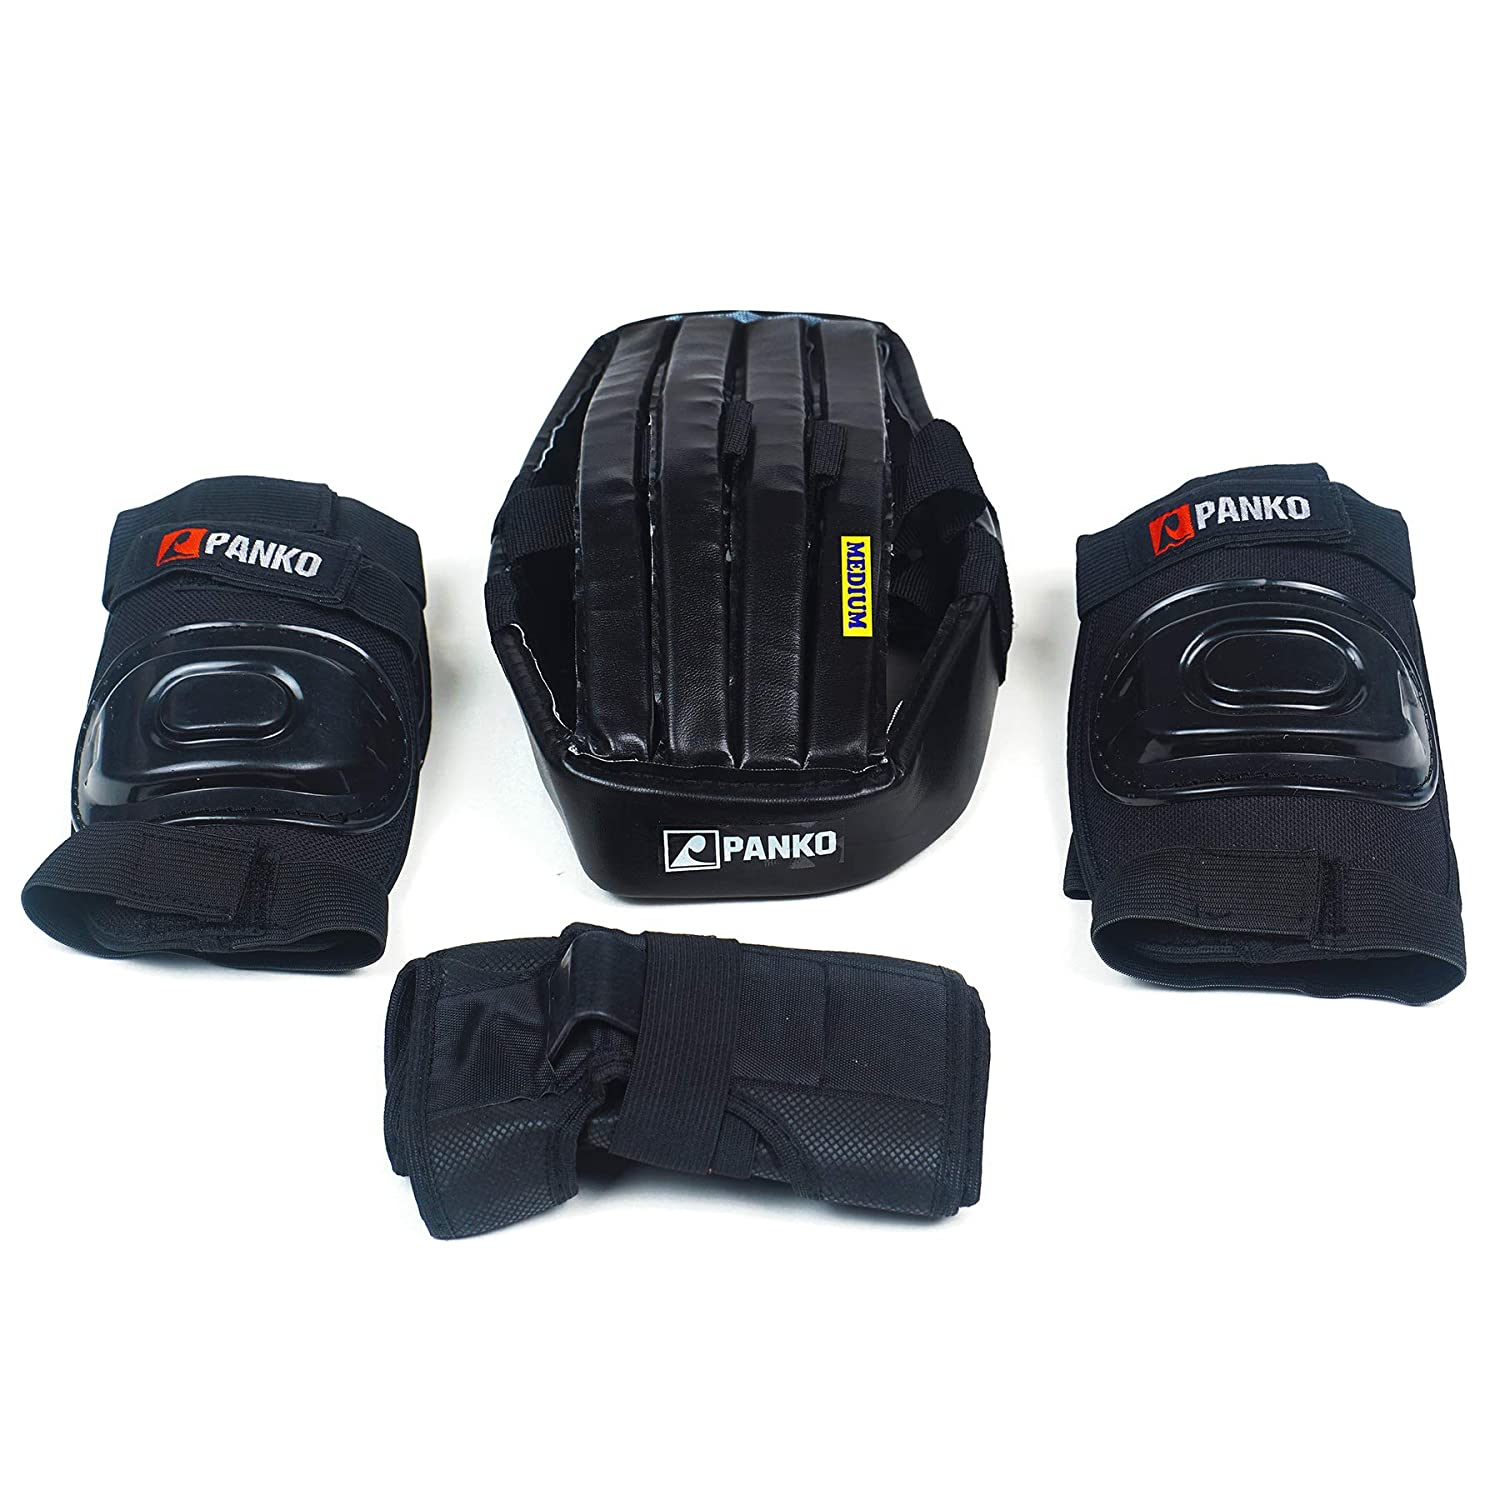 Skating Protective Set - Medium Size - Best Quality